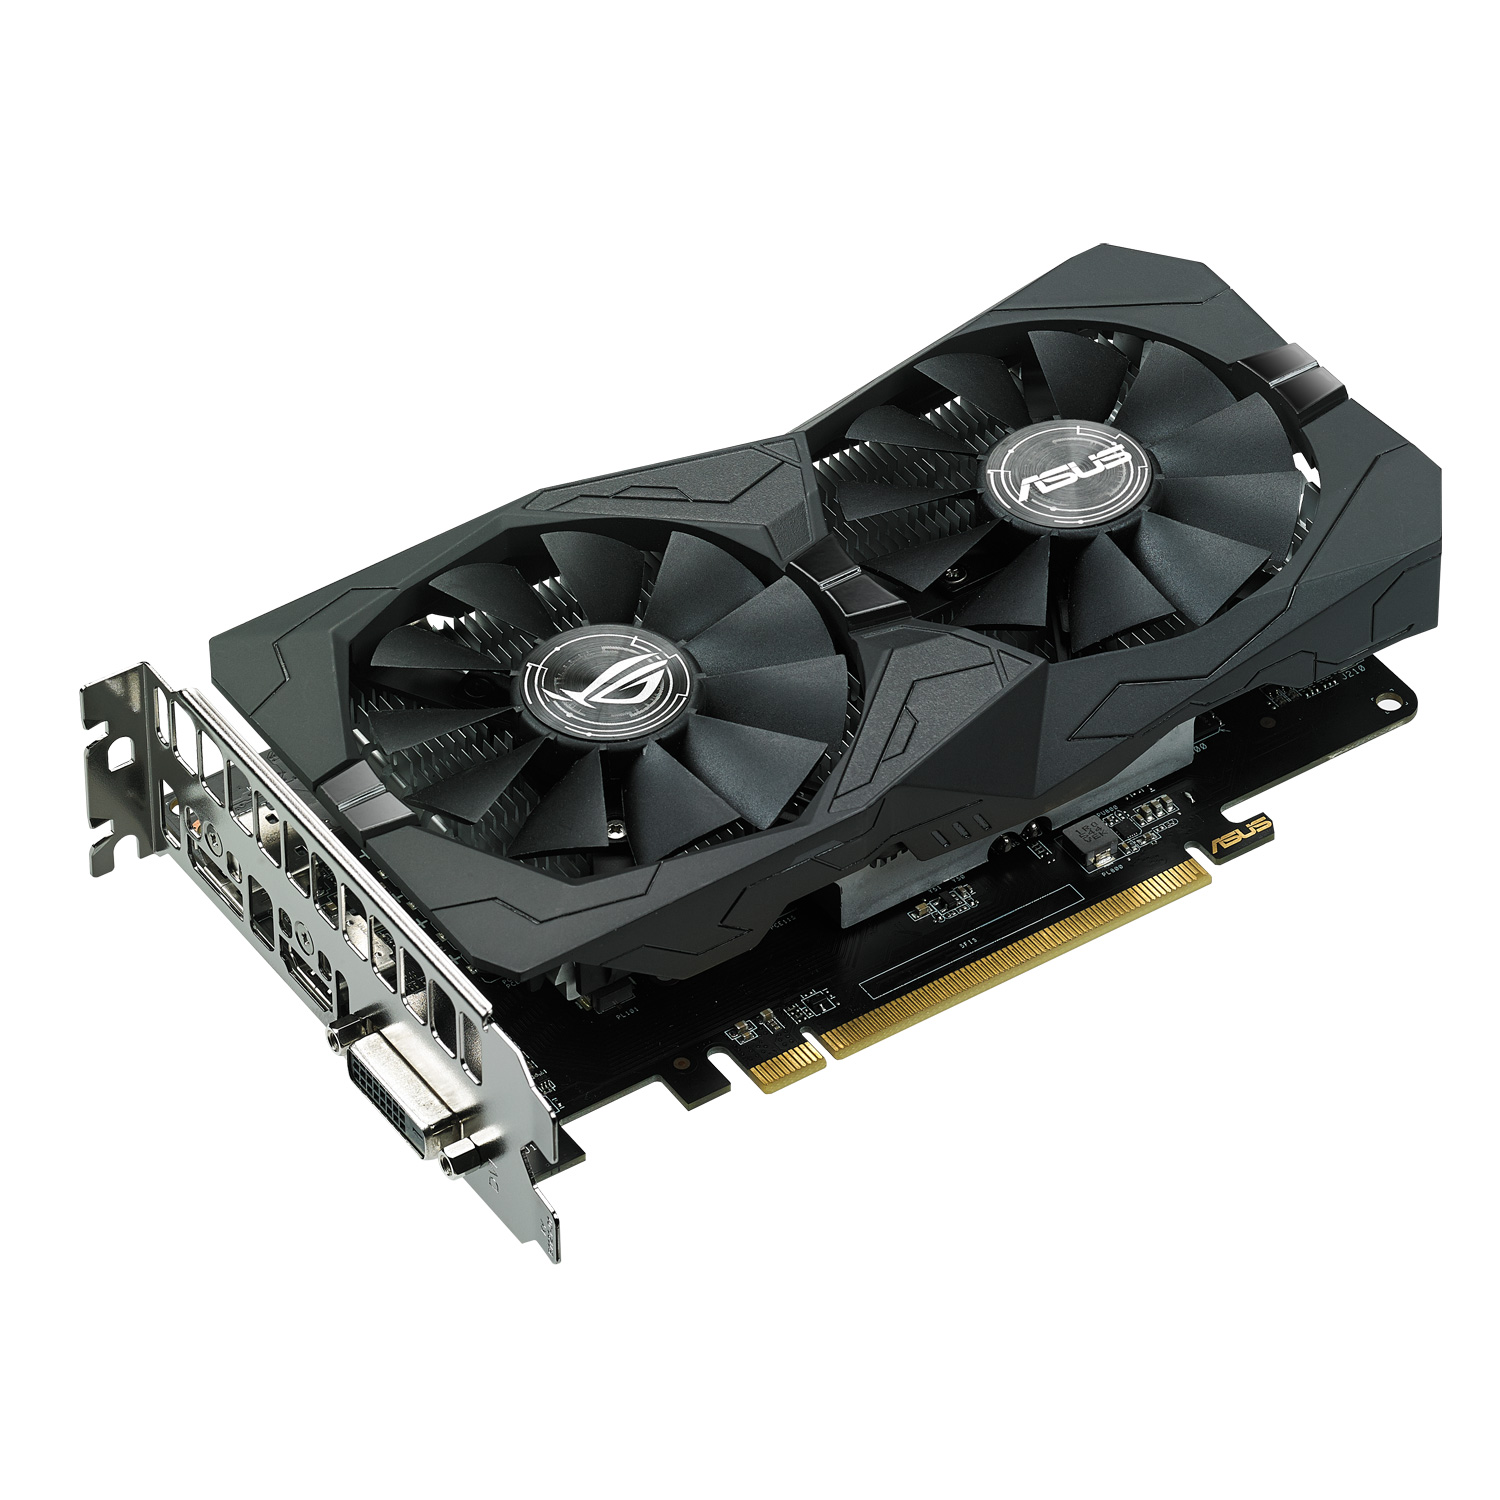 Carte graphique ASUS ROG STRIX AMD Radeon RX 560 4G Gaming 4 Go DVI HDMI DisplayPort - PCI Express (AMD Radeon RX 560)